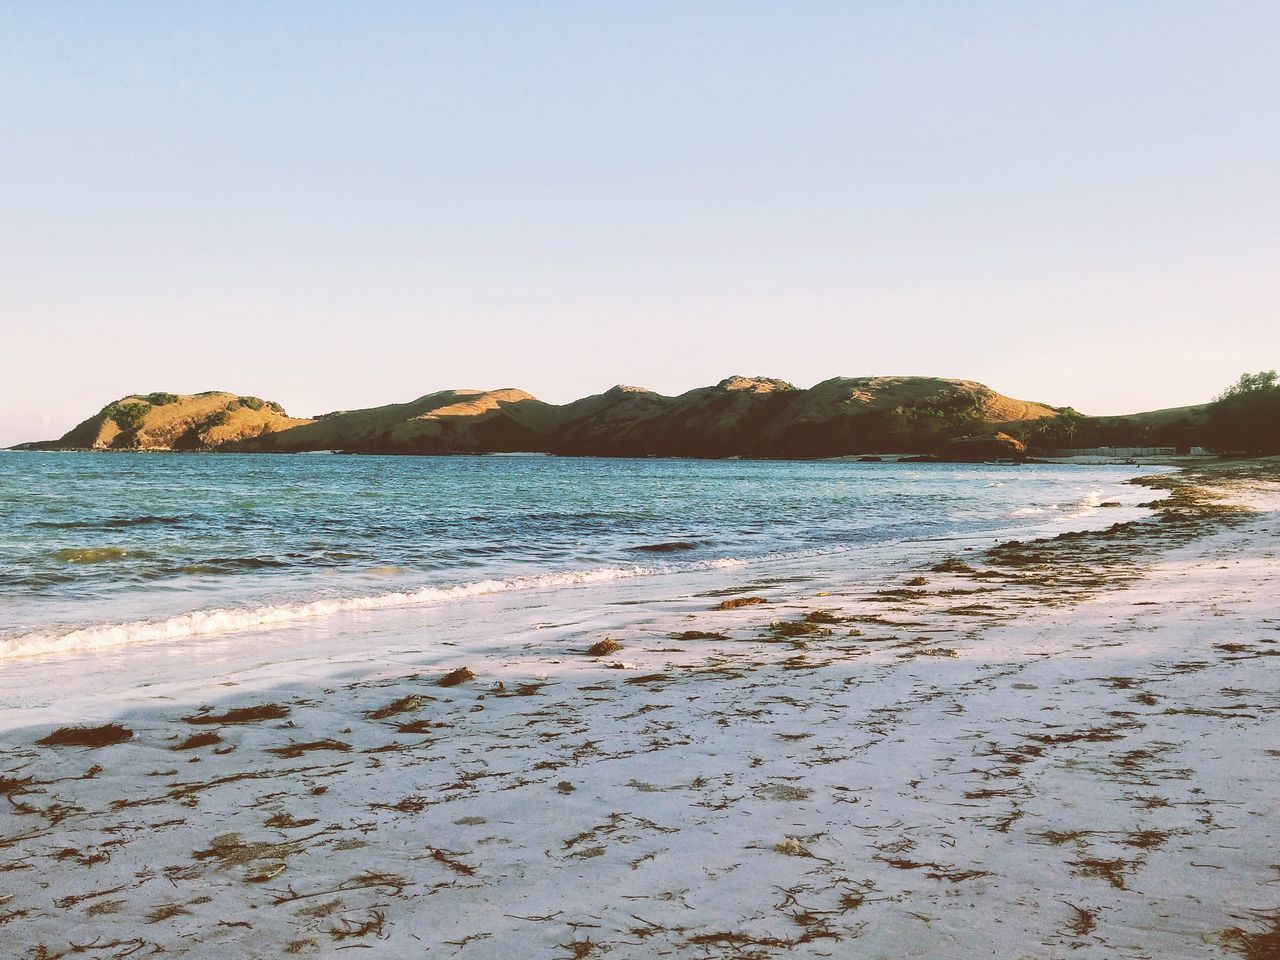 Beach Sea Sand Outdoors Nature Clear Sky Beauty In Nature Scenics Horizon Over Water Landscape The Great Outdoors - 2017 EyeEm Awards